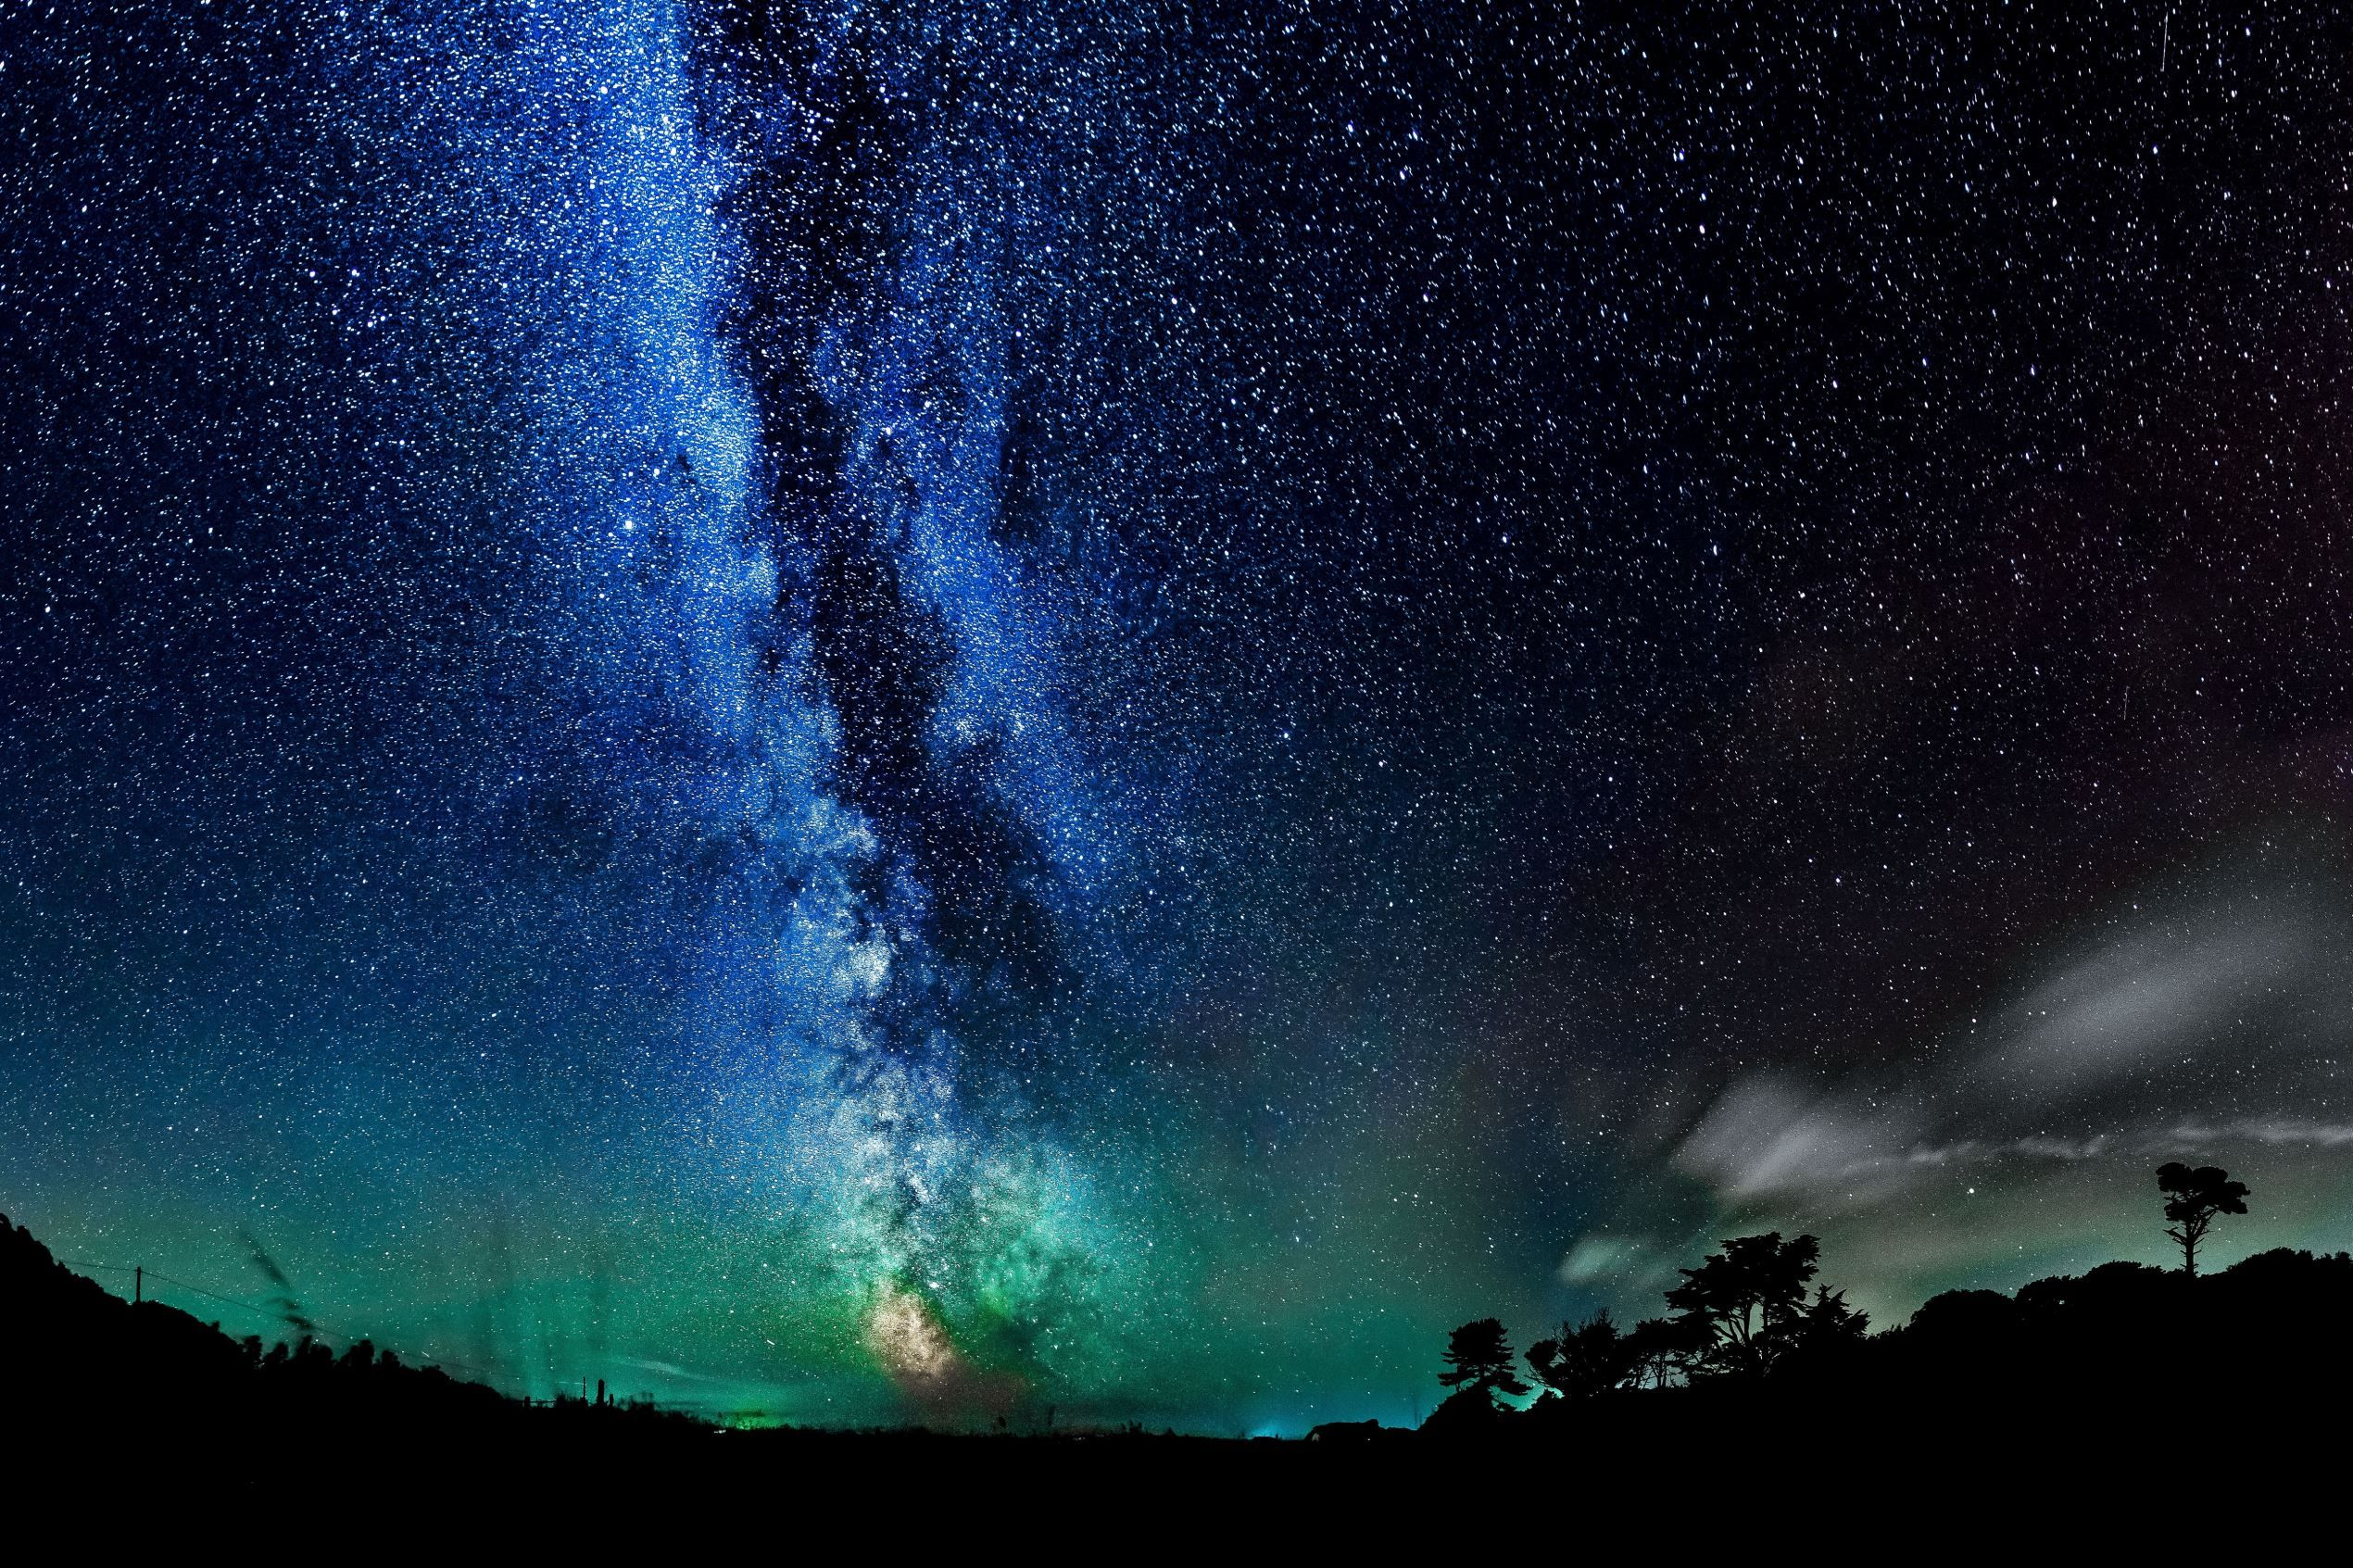 ISLE OF WIGHT, ENGLAND Star galaxies light up the clear night sky